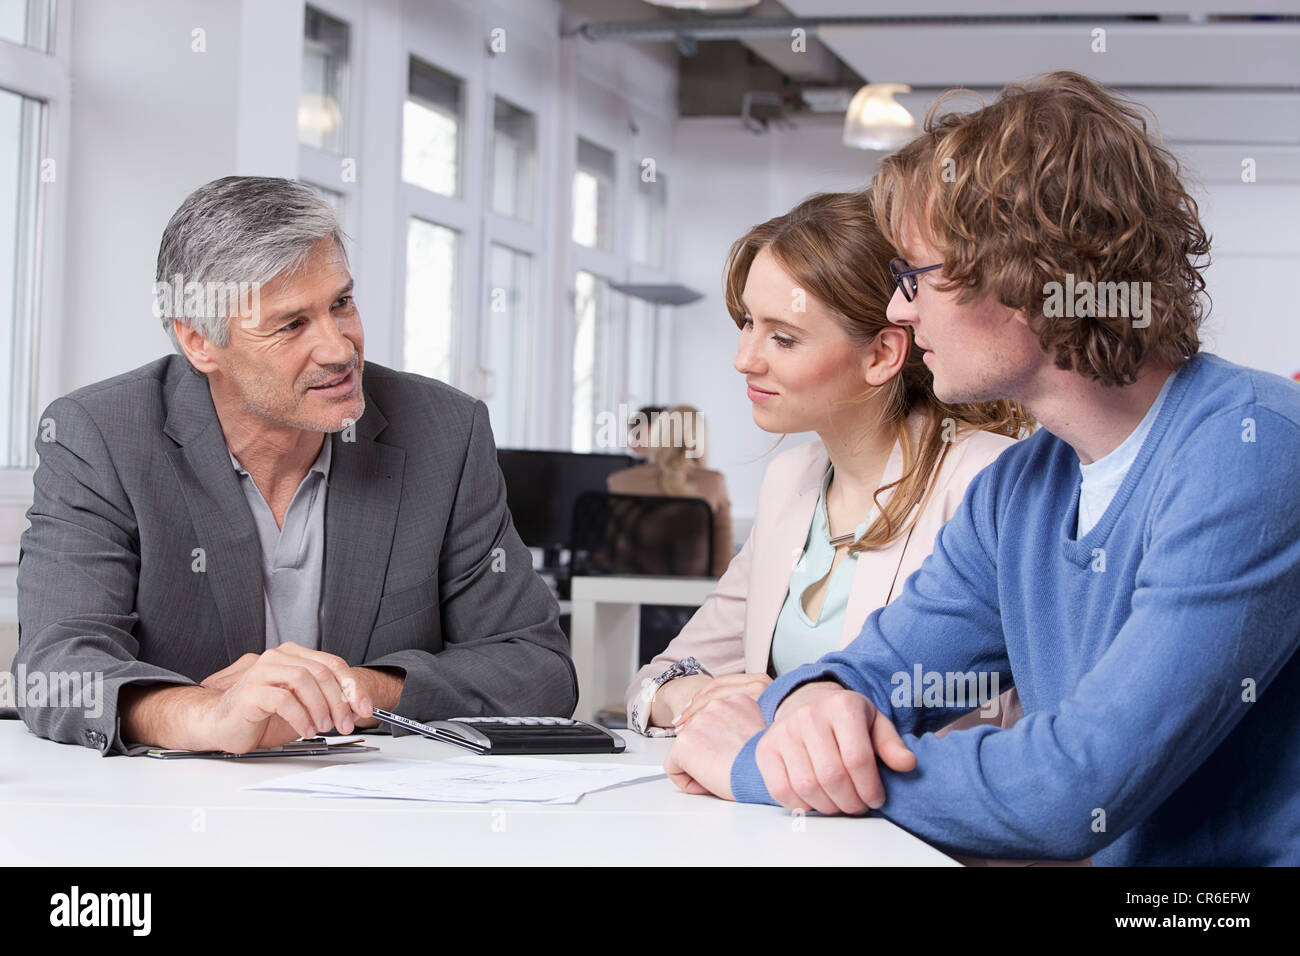 Germany, Bavaria, Munich, Men and woman discussing at table - Stock Image